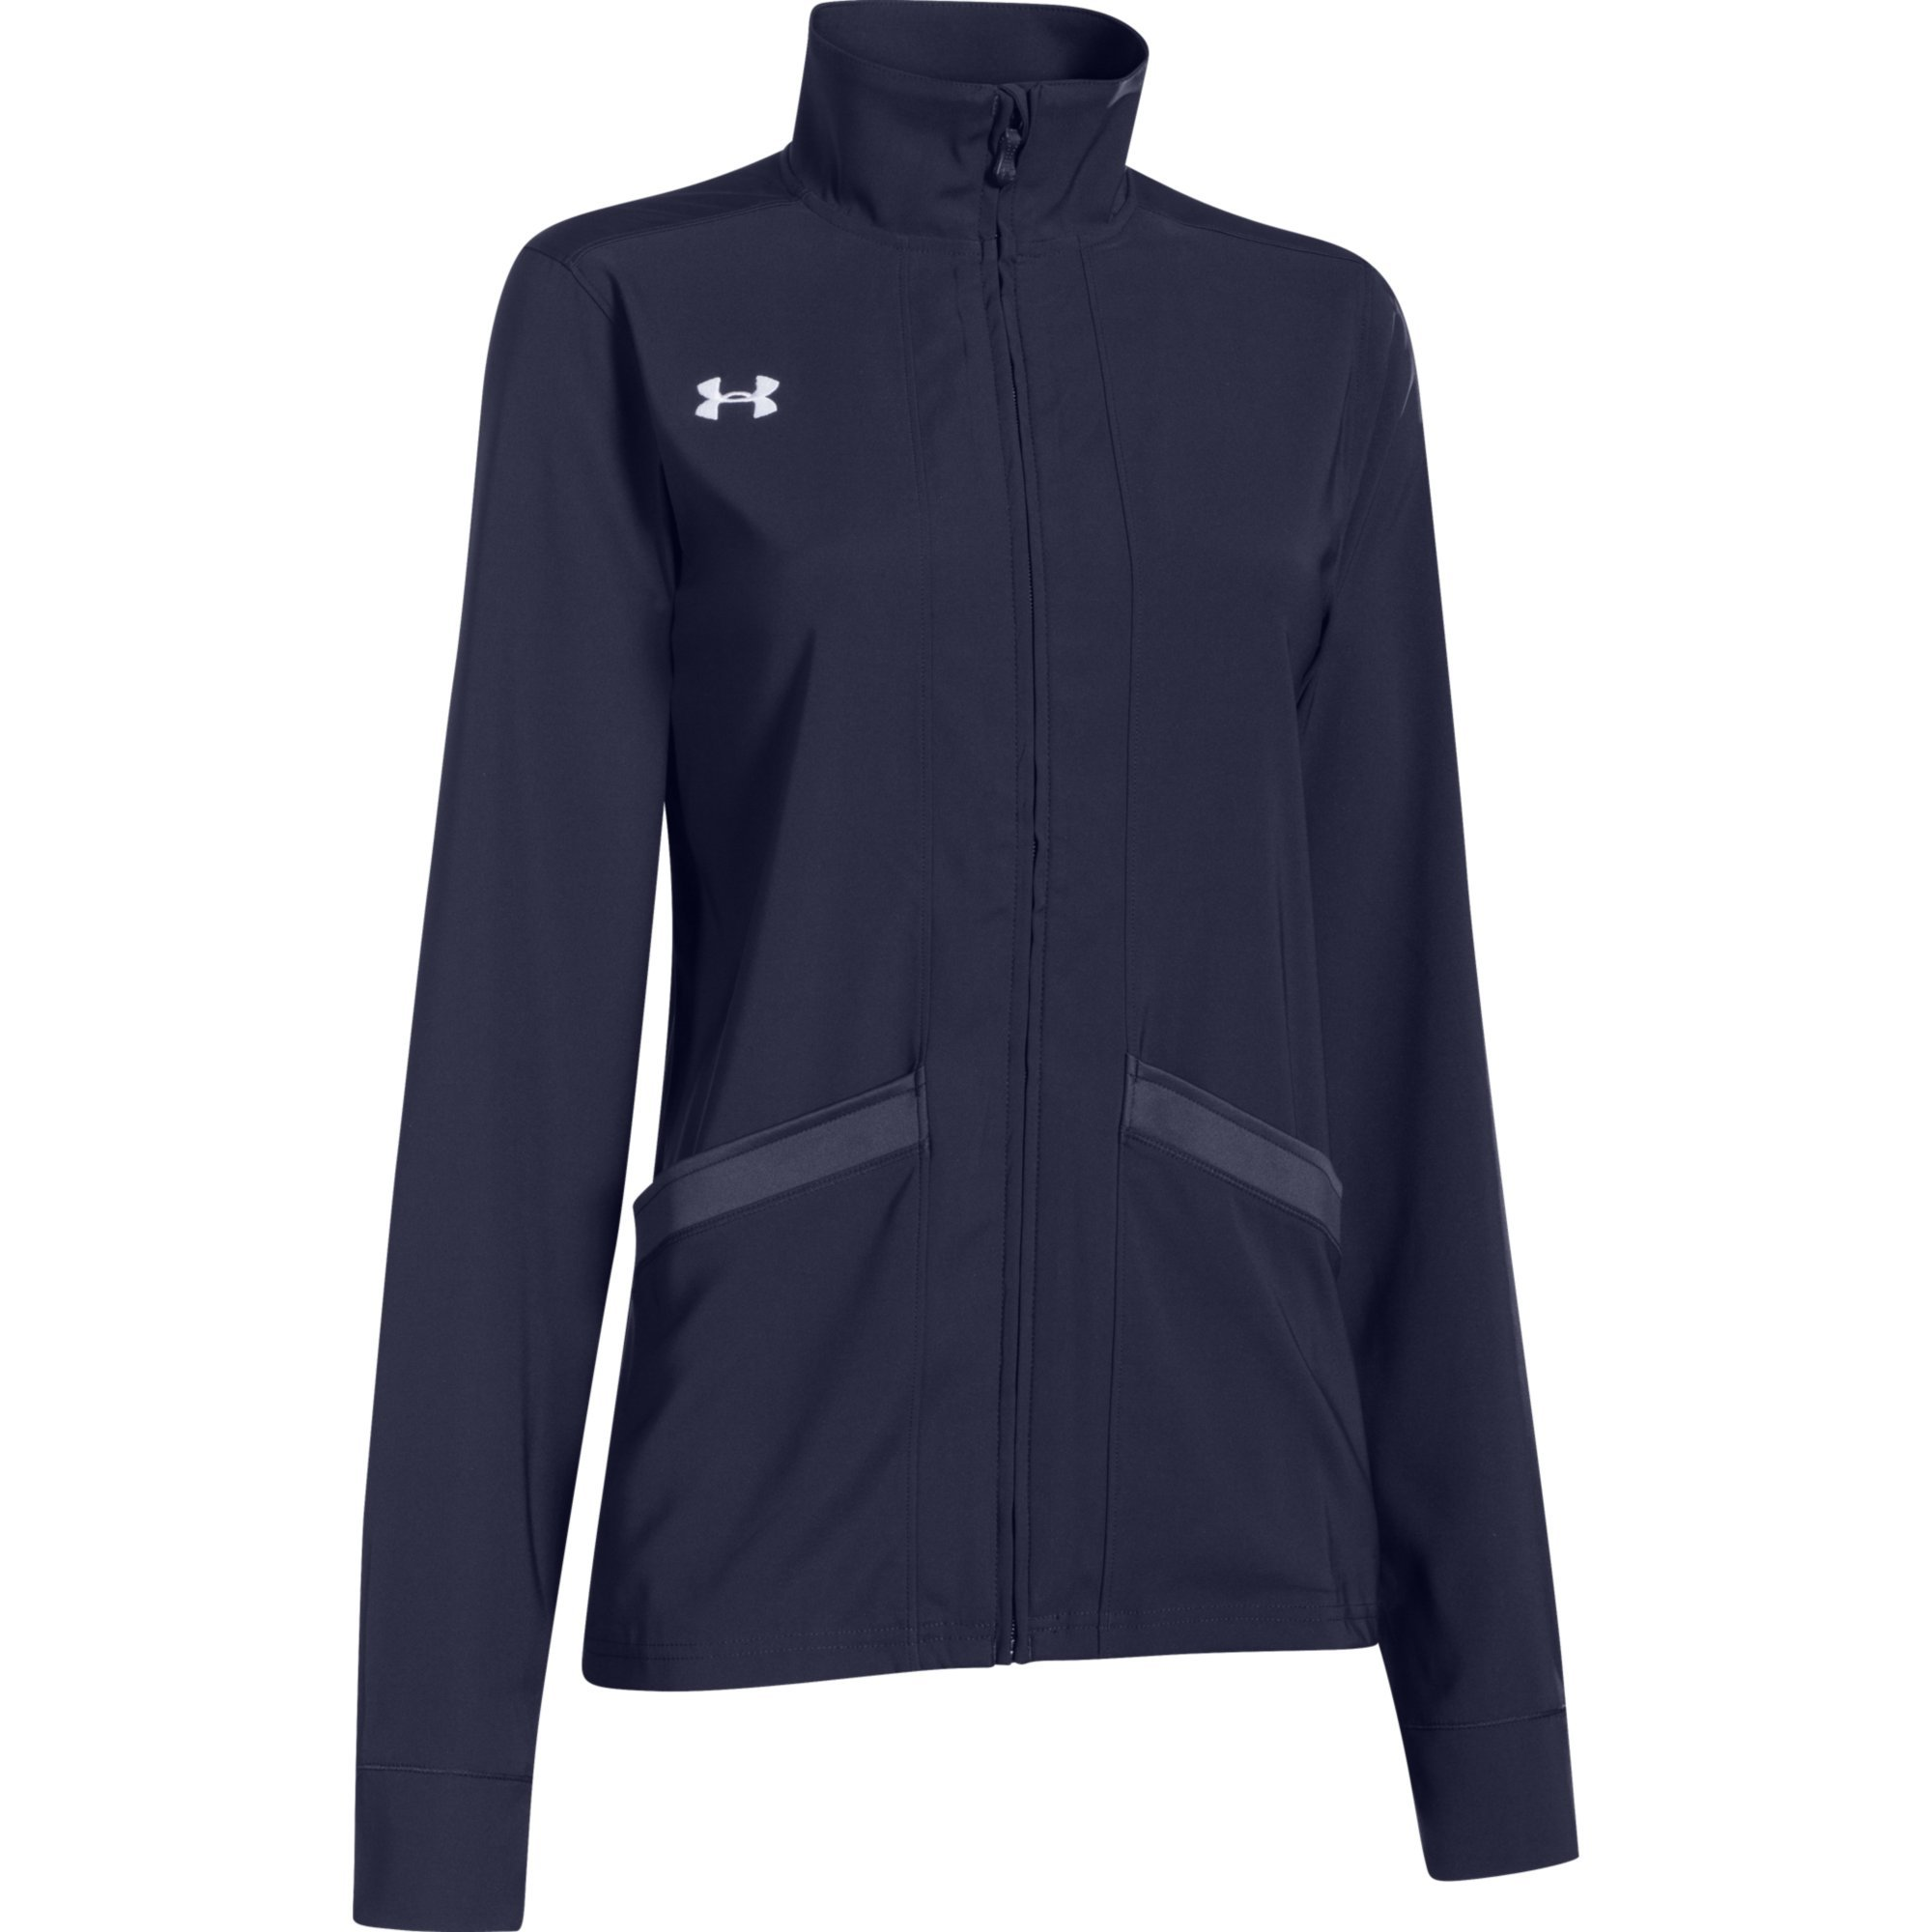 Under Armour Women's Pre-Game Woven Jacket by Under Armour